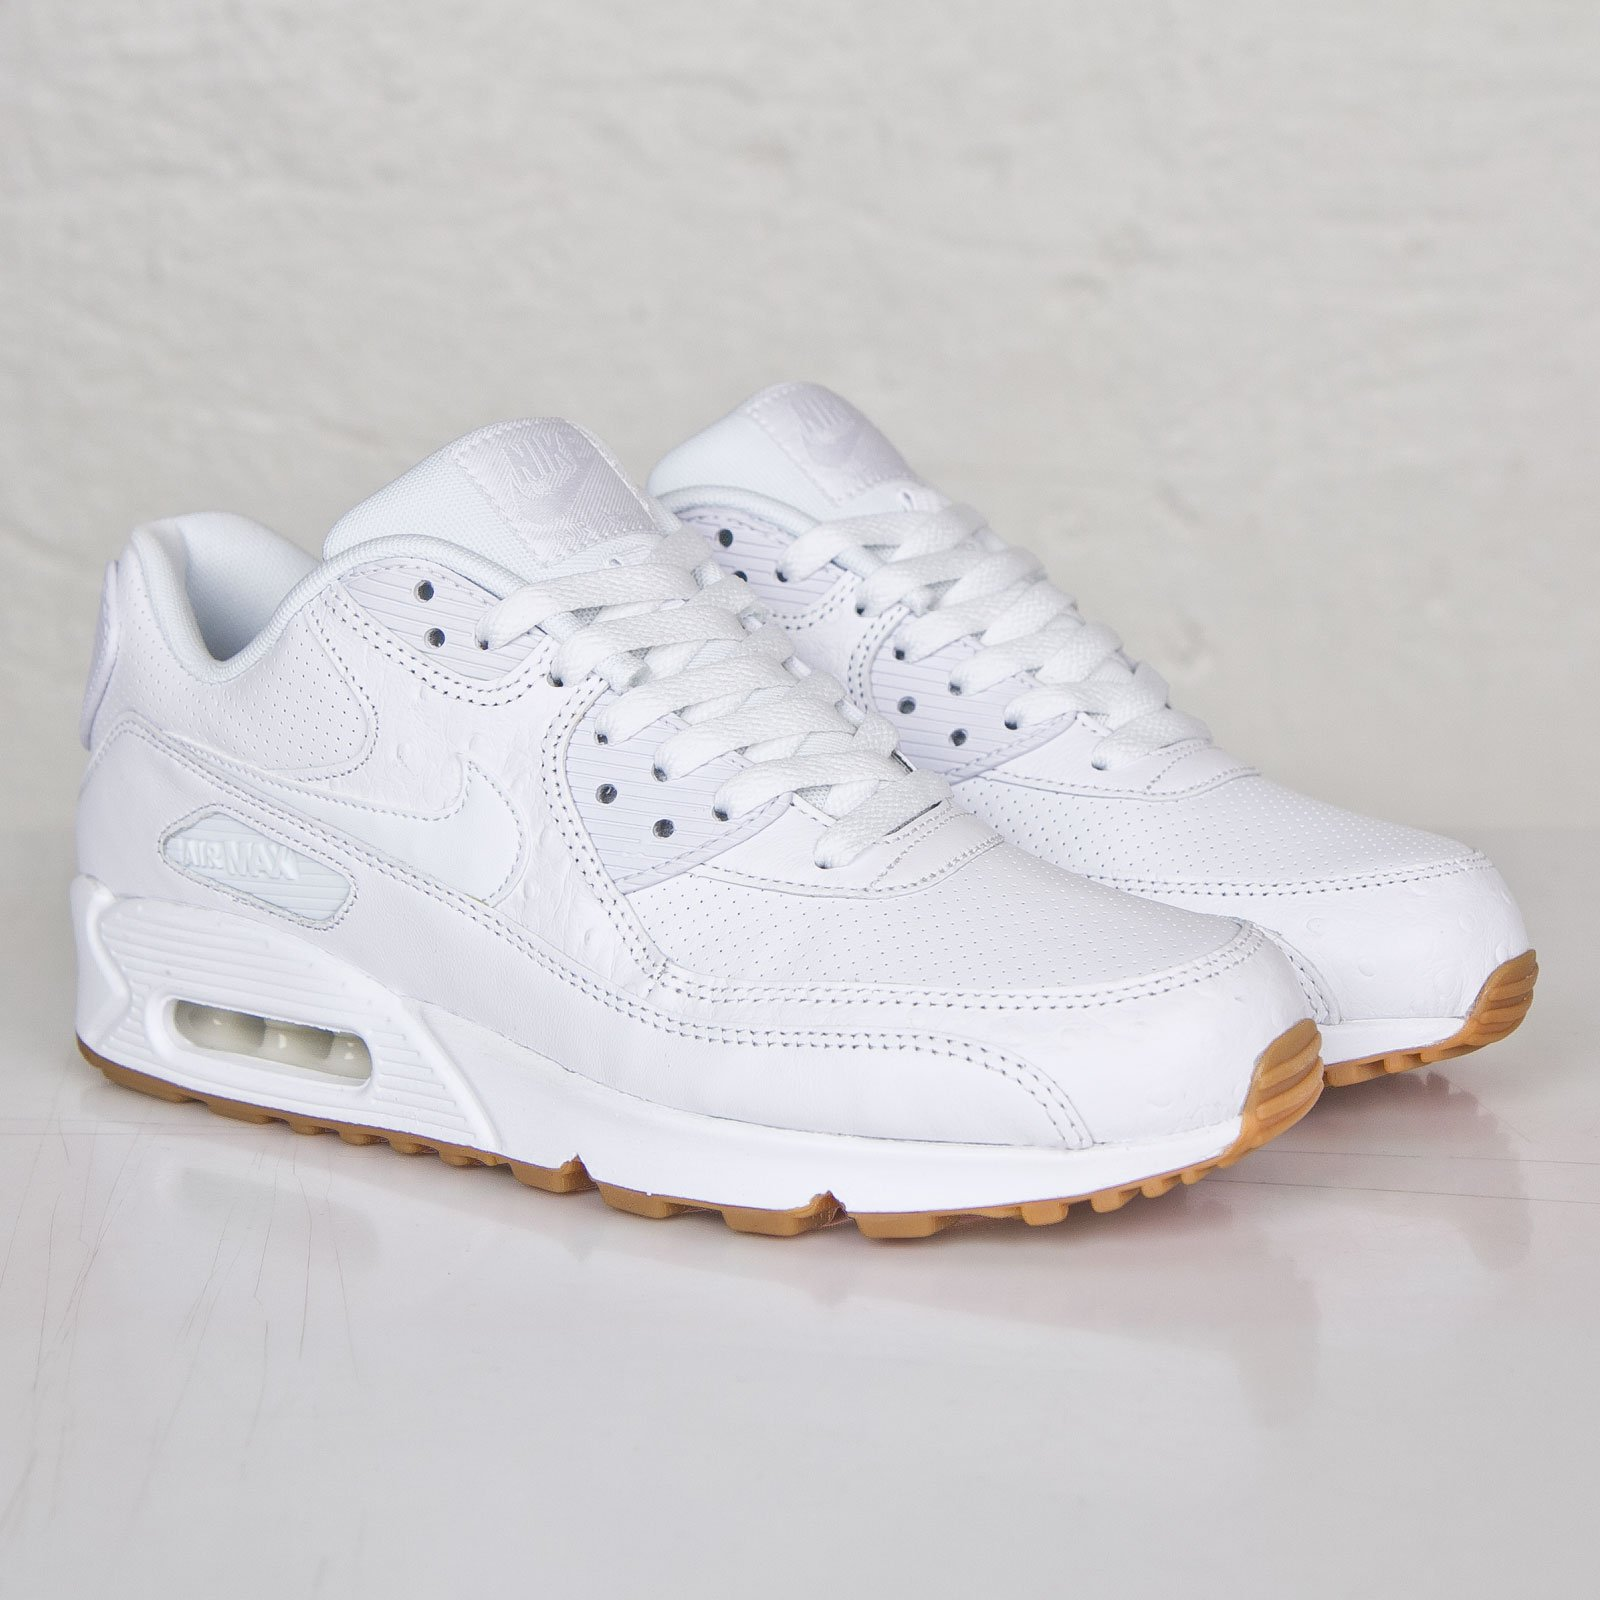 huge discount 72a27 ece33 Nike Air Max 90 Leather PA - 705012-111 - Sneakersnstuff ...